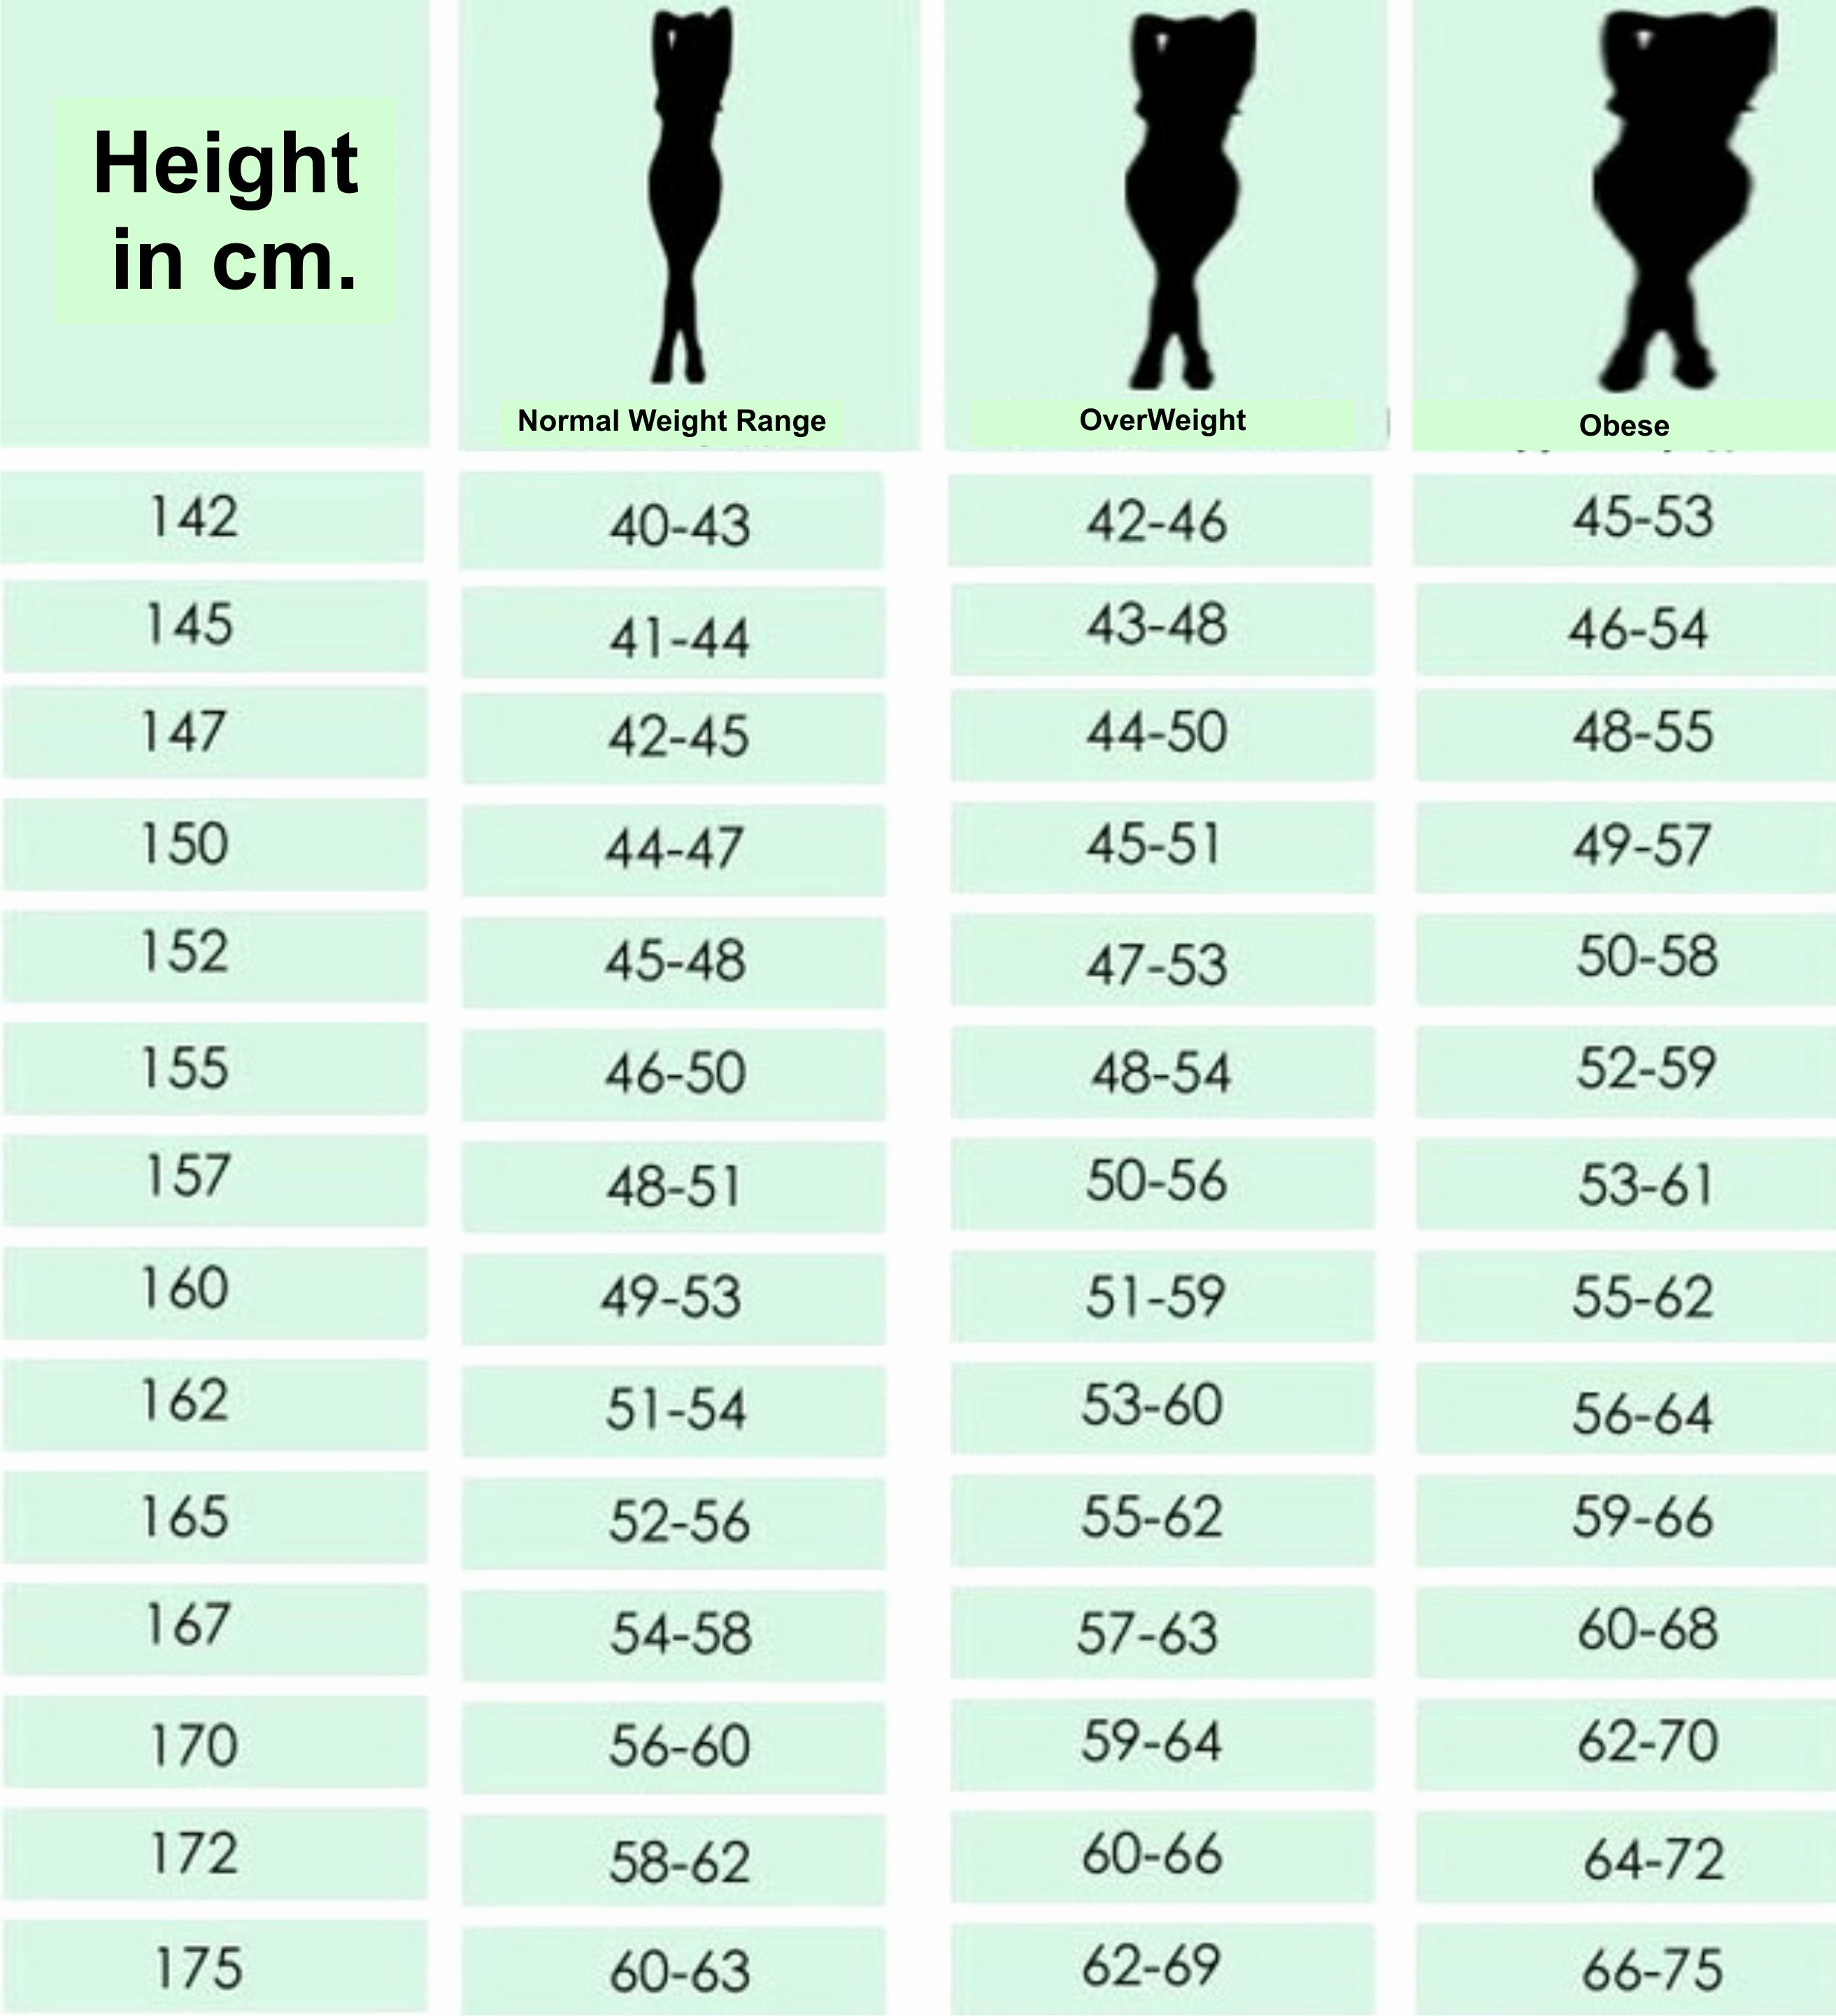 Height Chart In Inches Luxury Chart for Women According to Height What is Your Ideal